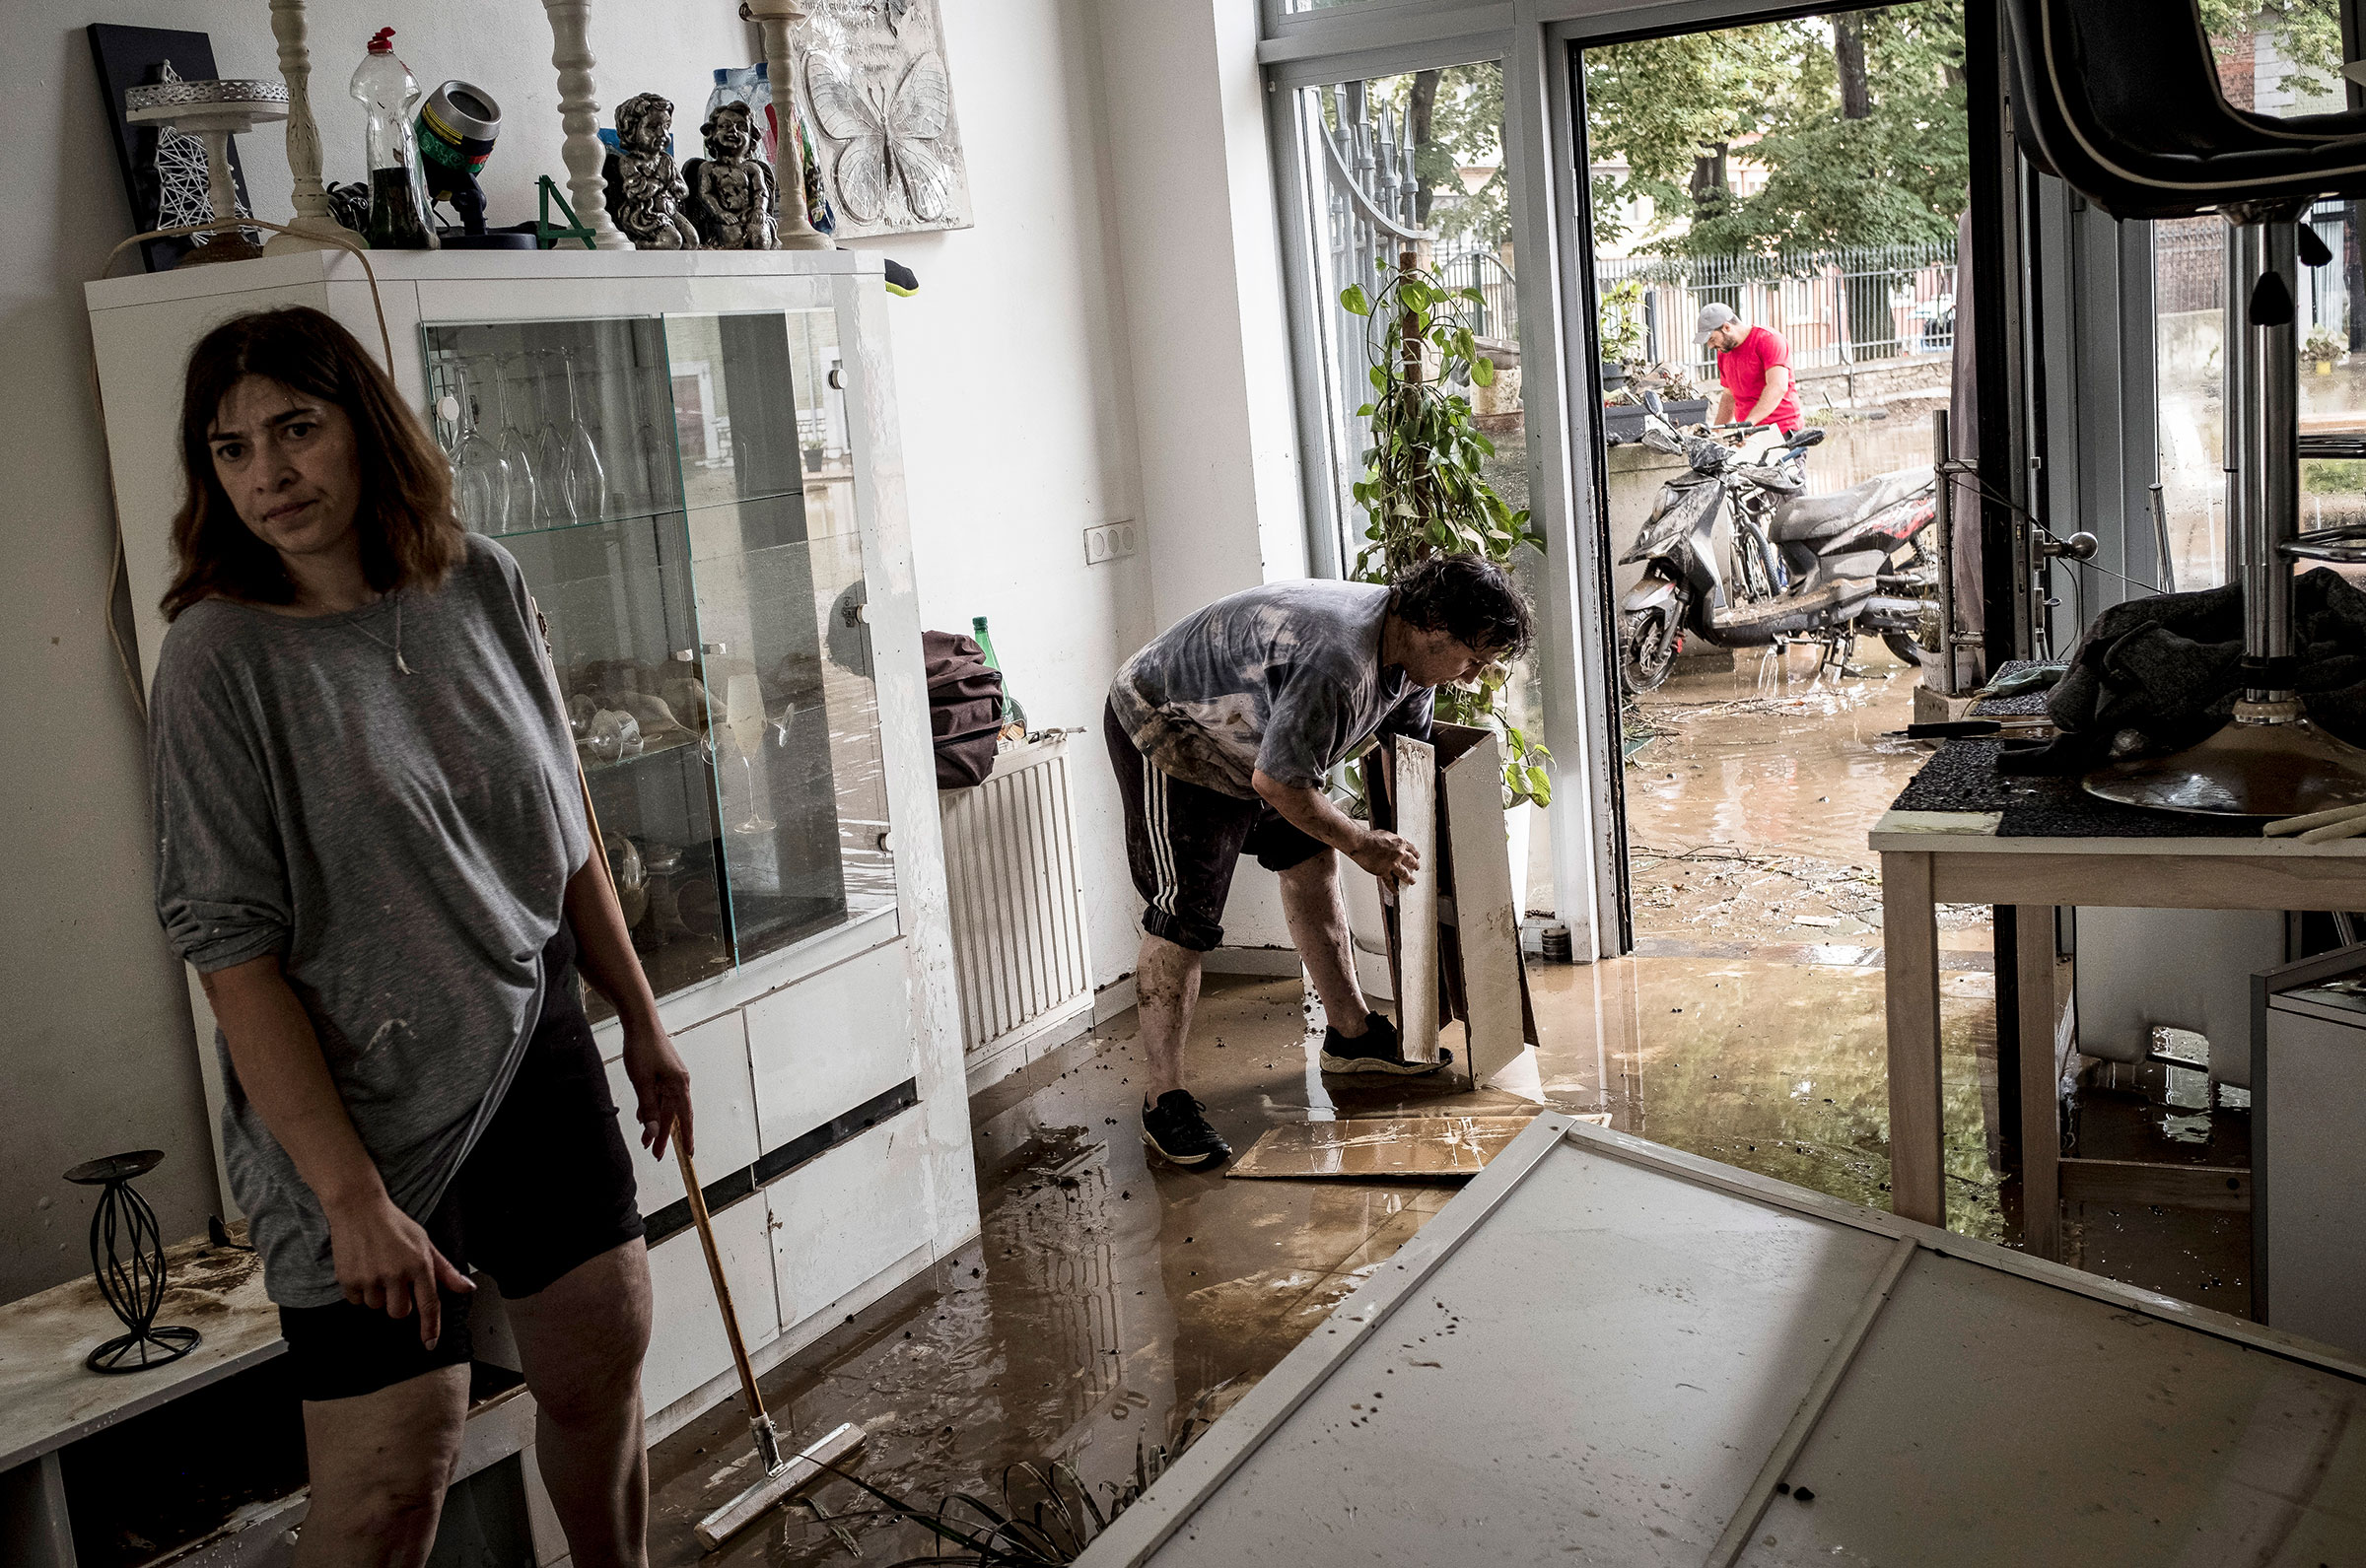 Homeowners push mud and water out of their house after flooding in Angleur, Belgium, on Friday July 16, 2021.